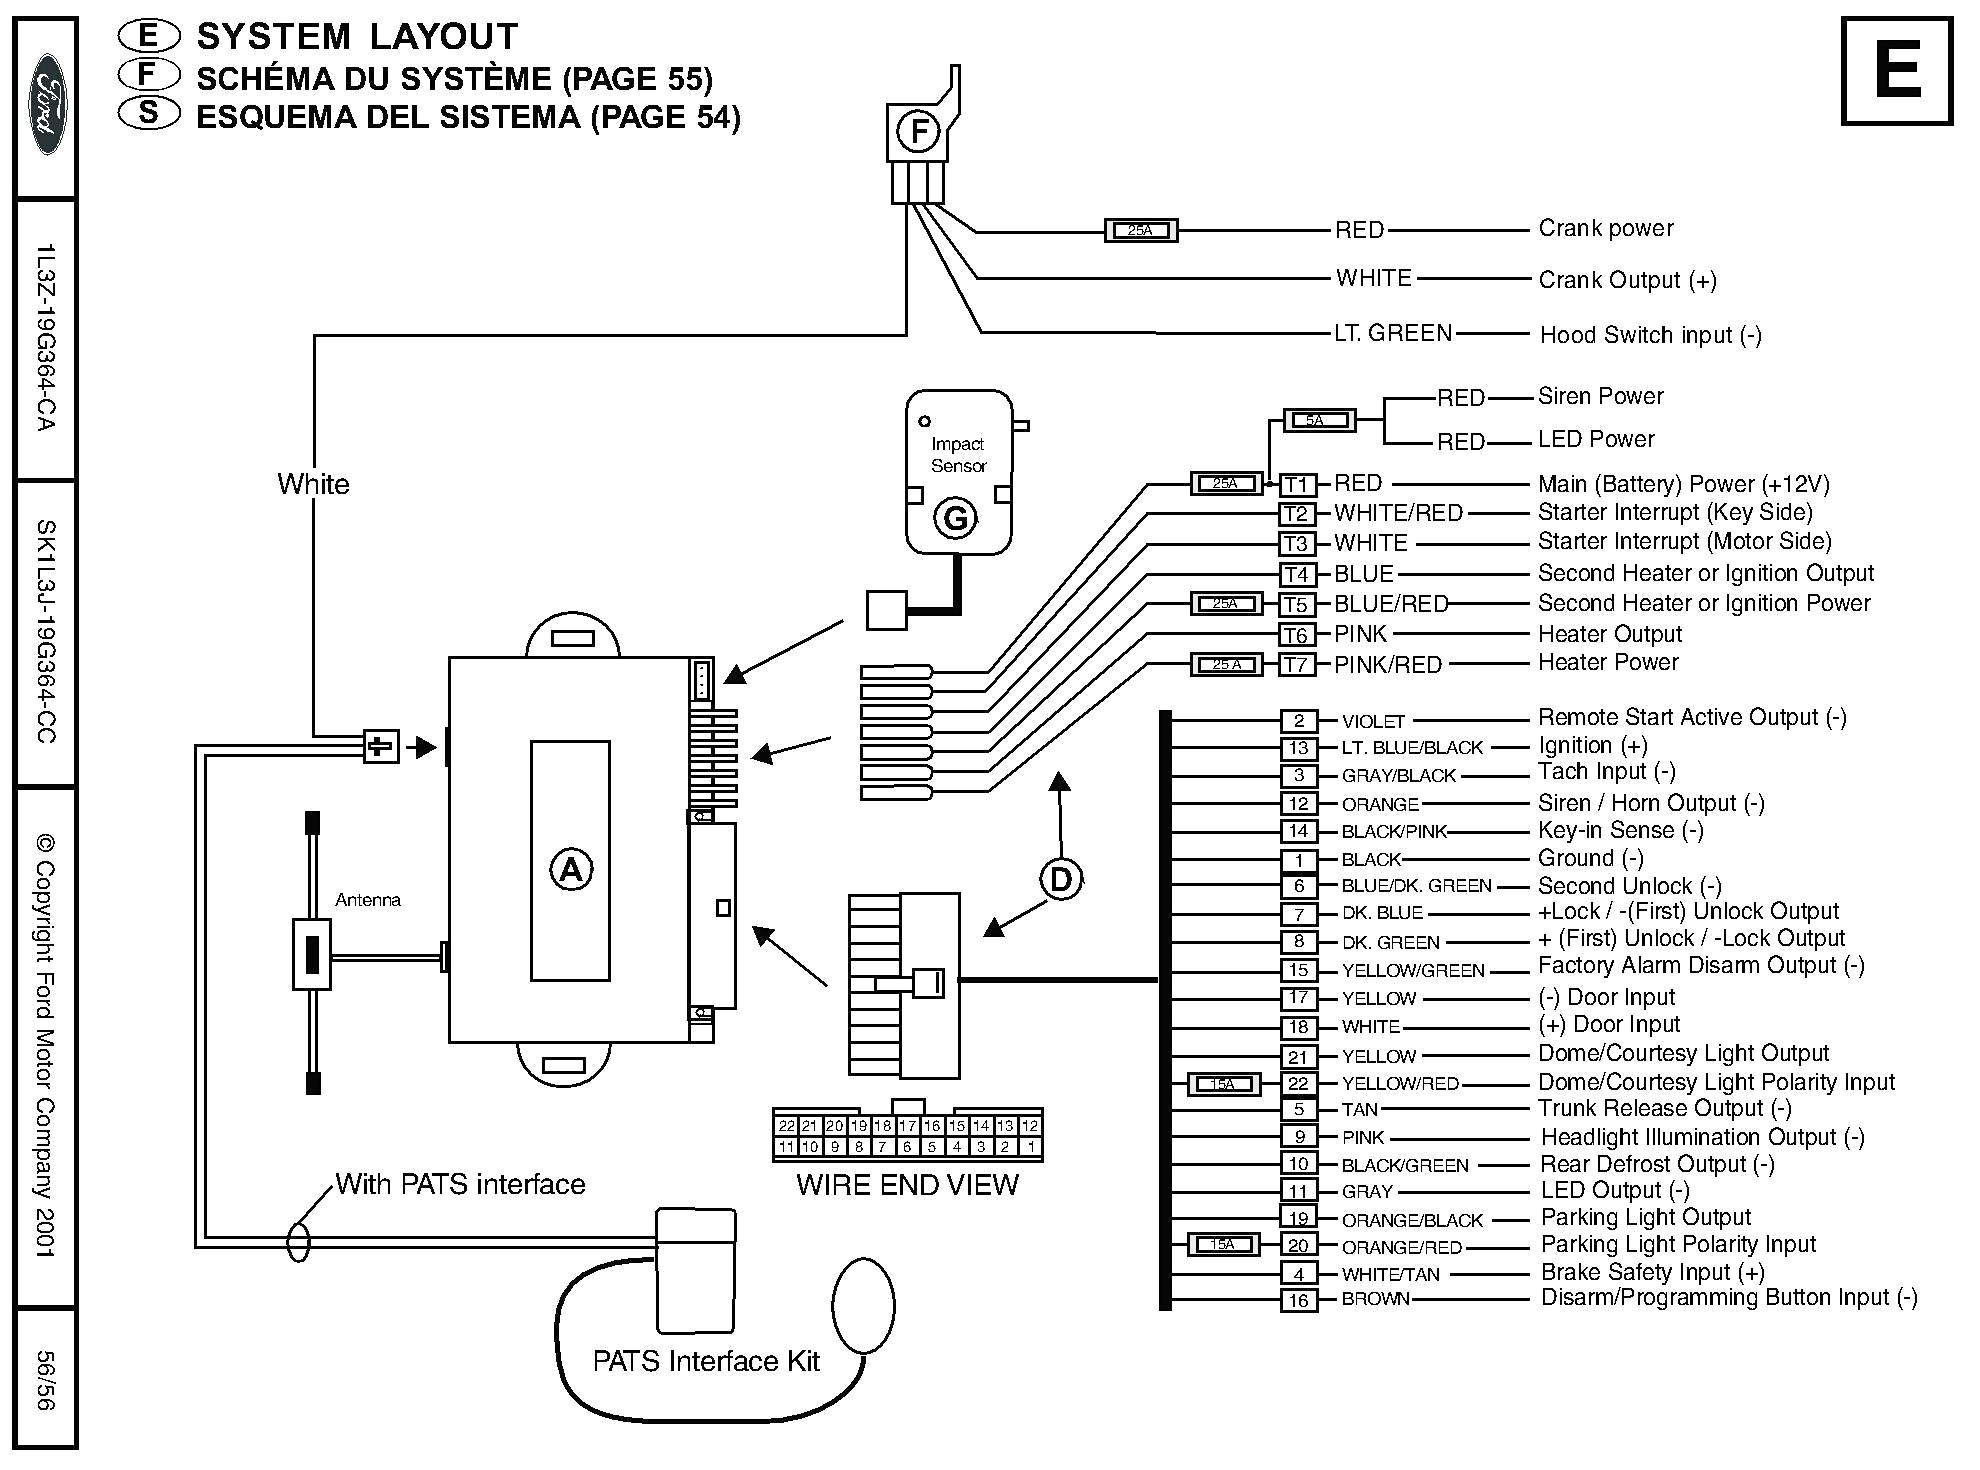 Bulldog Security Wiring Diagrams Bulldog Car Alarm Wiring Diagram Domestic Fresh Manual In Of Bulldog Security Wiring Diagrams